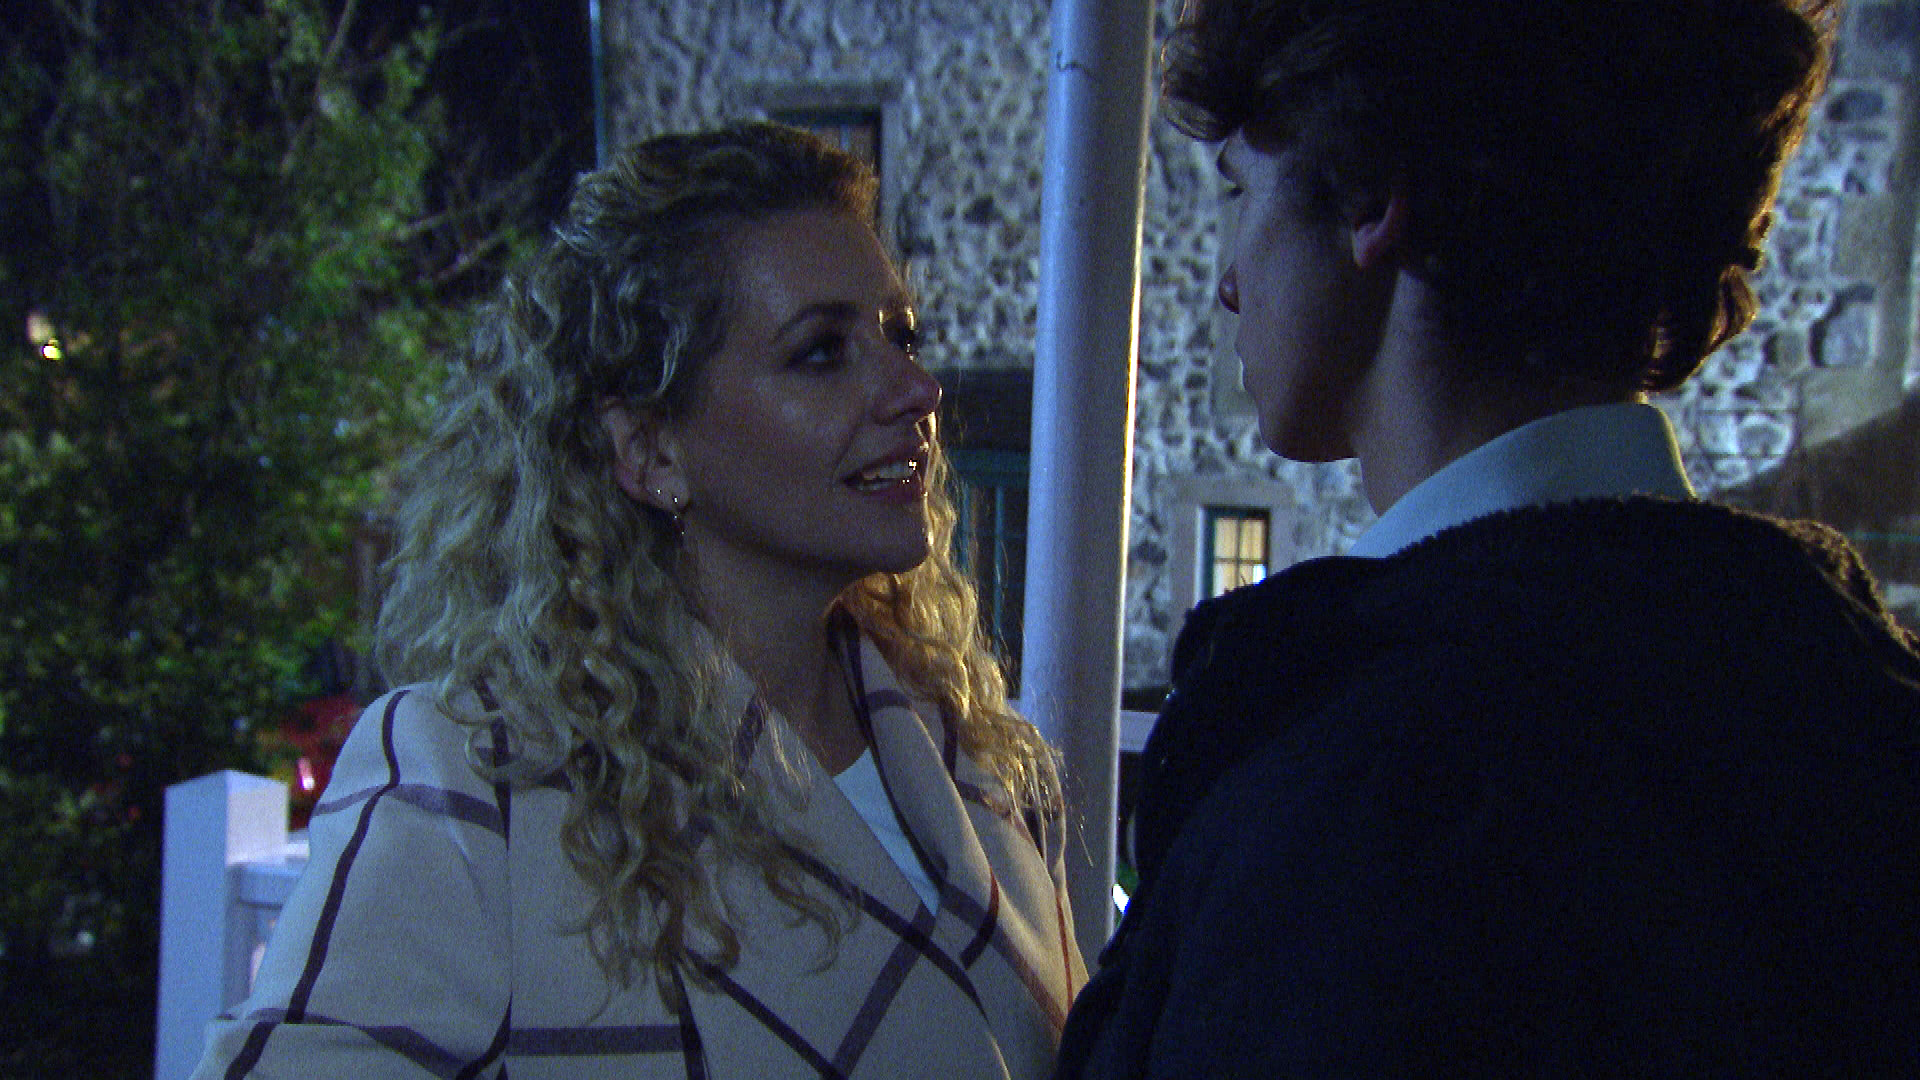 Emmerdale spoilers: Jacob Gallagher calls things off with child abuser Maya Stepney after uncomfortable passion scene